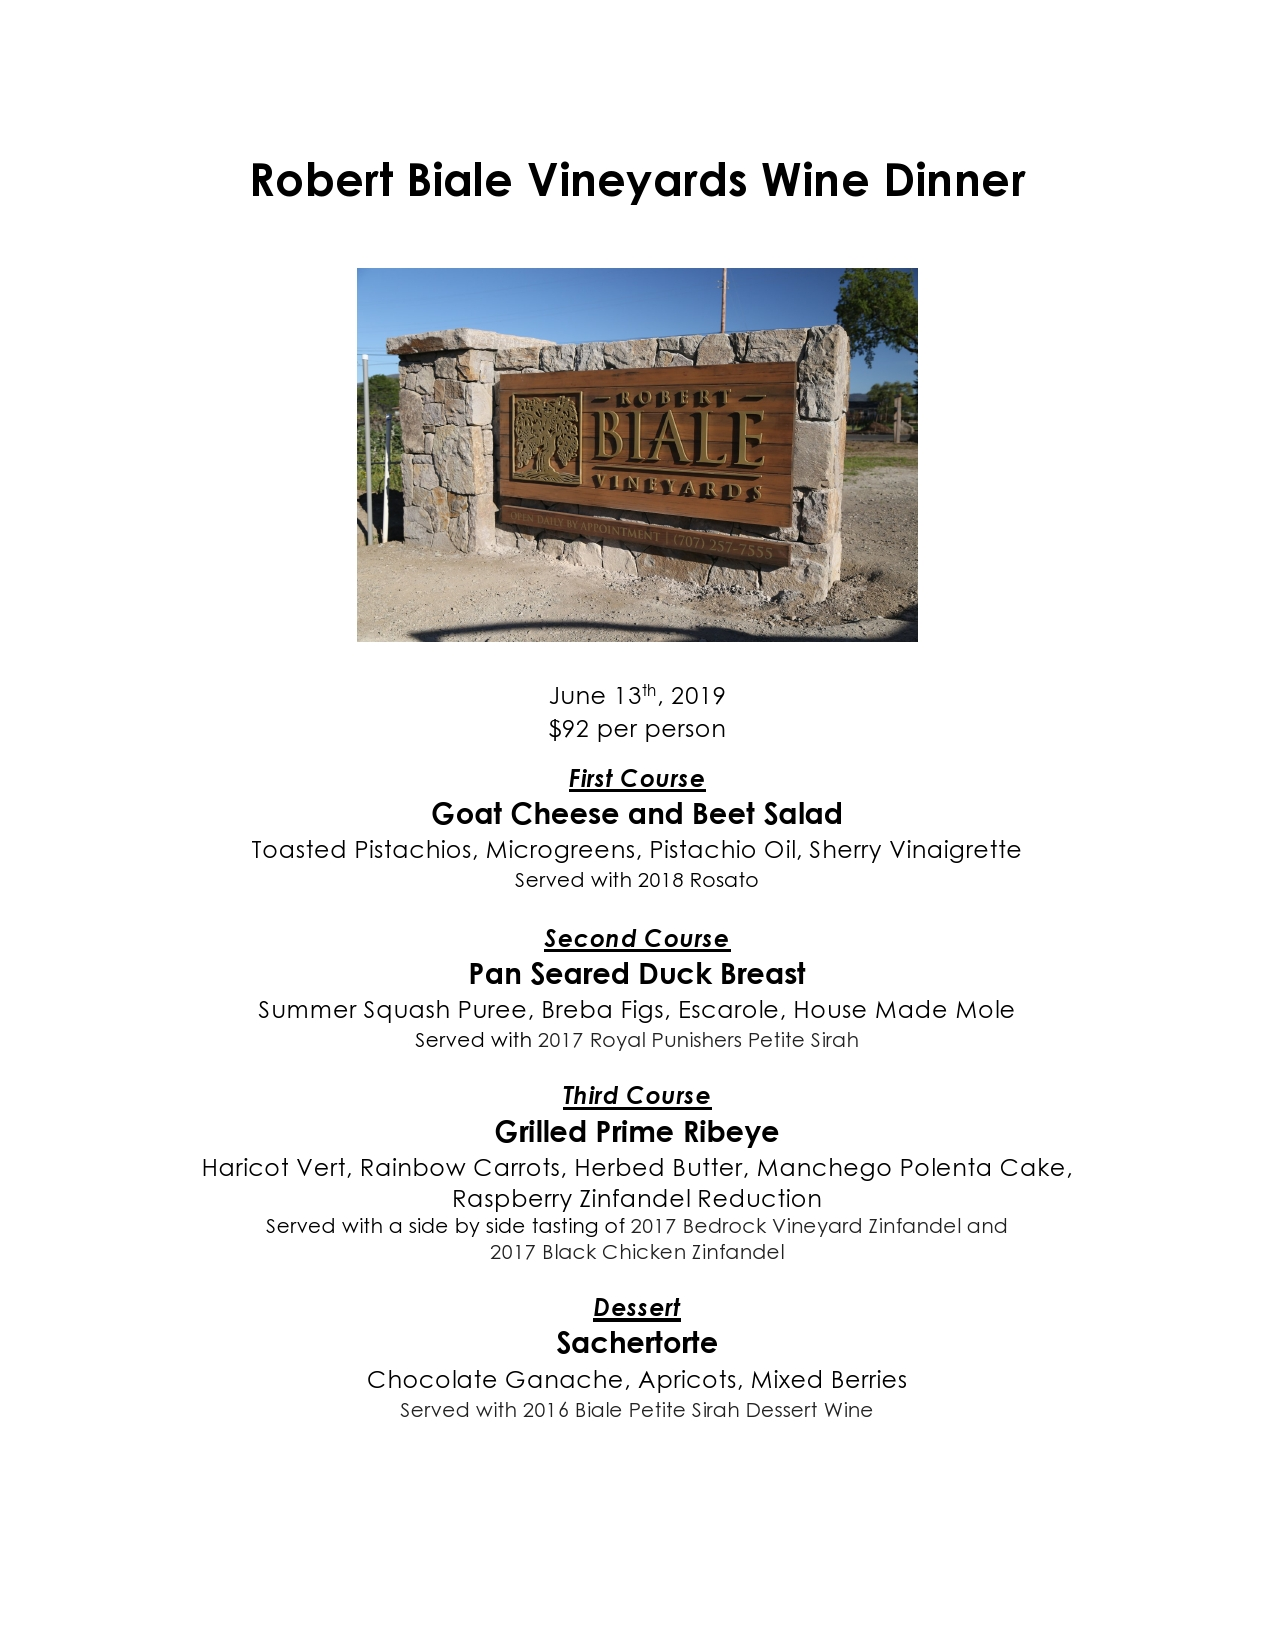 Red Tavern upcoming event: Robert Biale Wine Dinner – June 13th